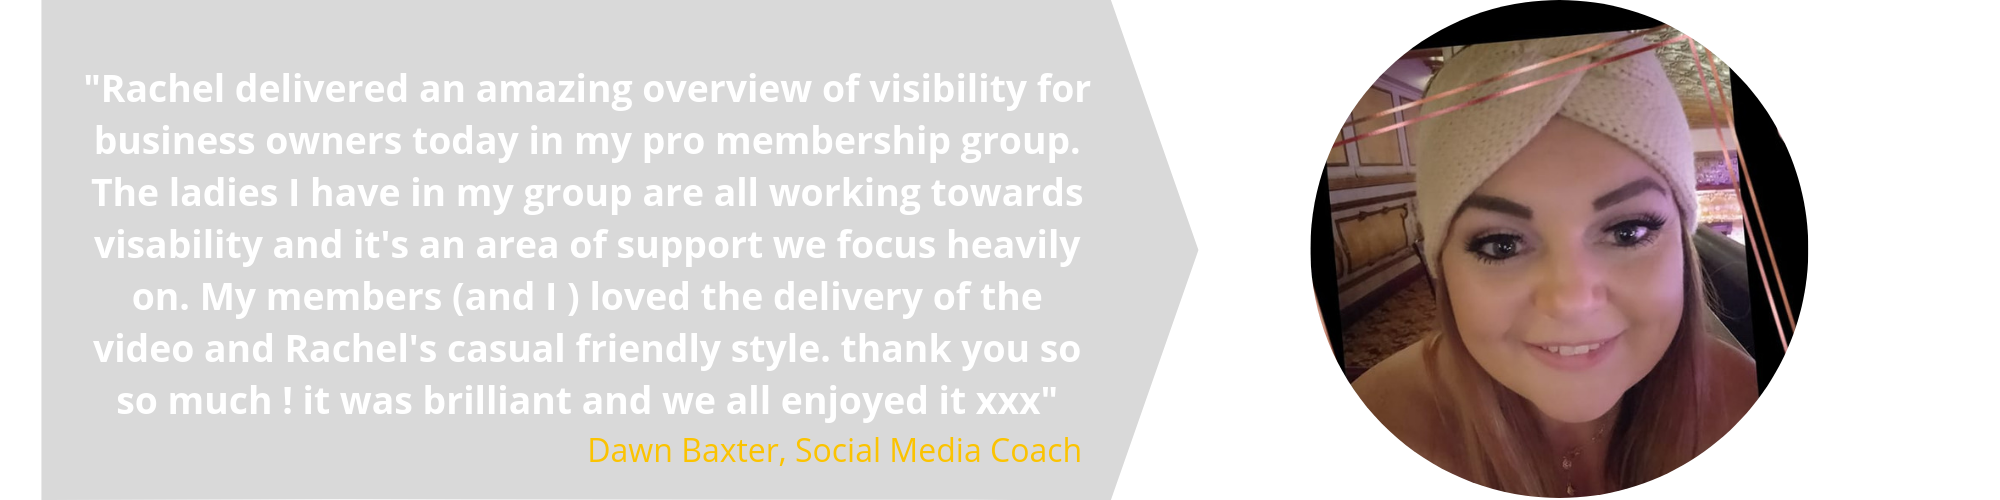 business visibility coach